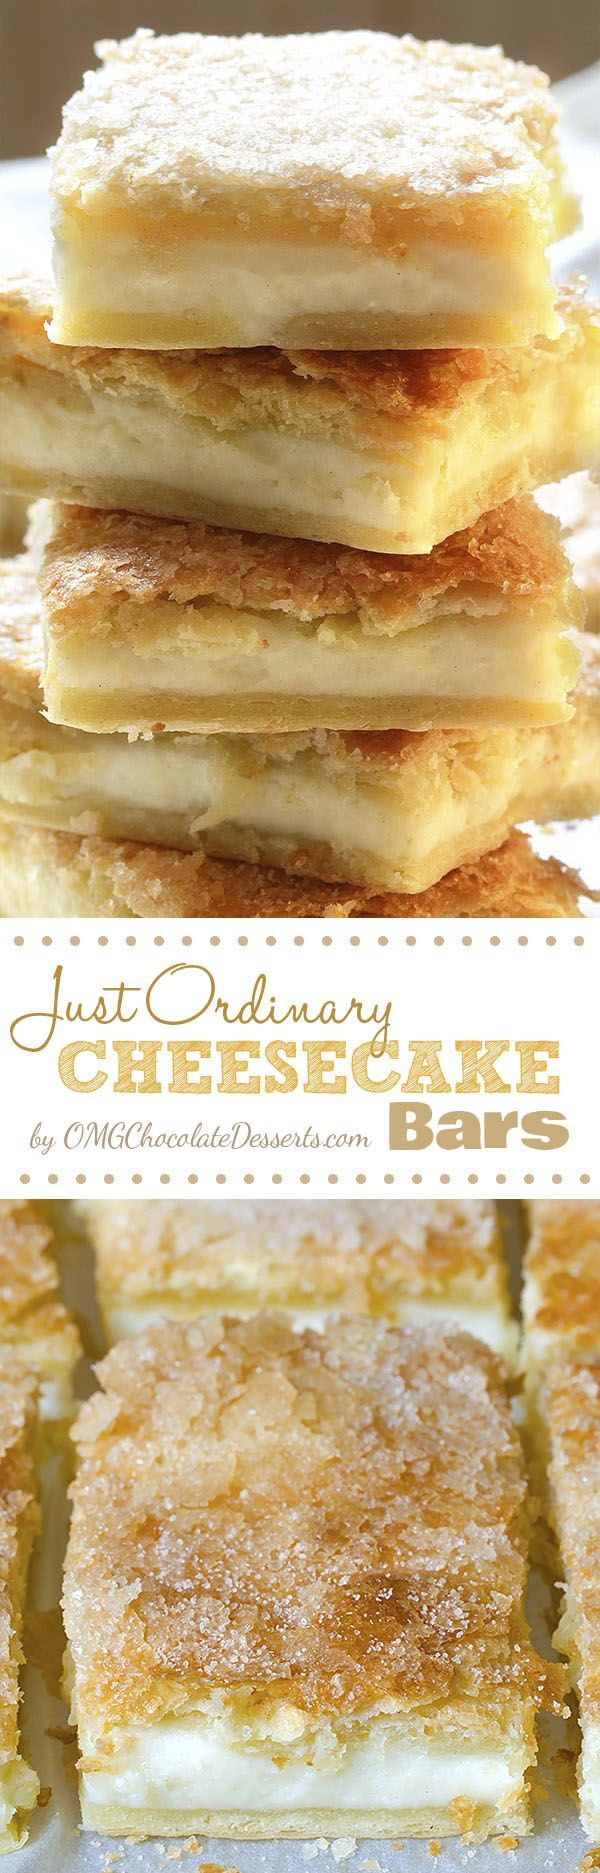 Just Ordinary Cheesecake Bars...Made these last night at the Pampered Chef Party!! So good!!